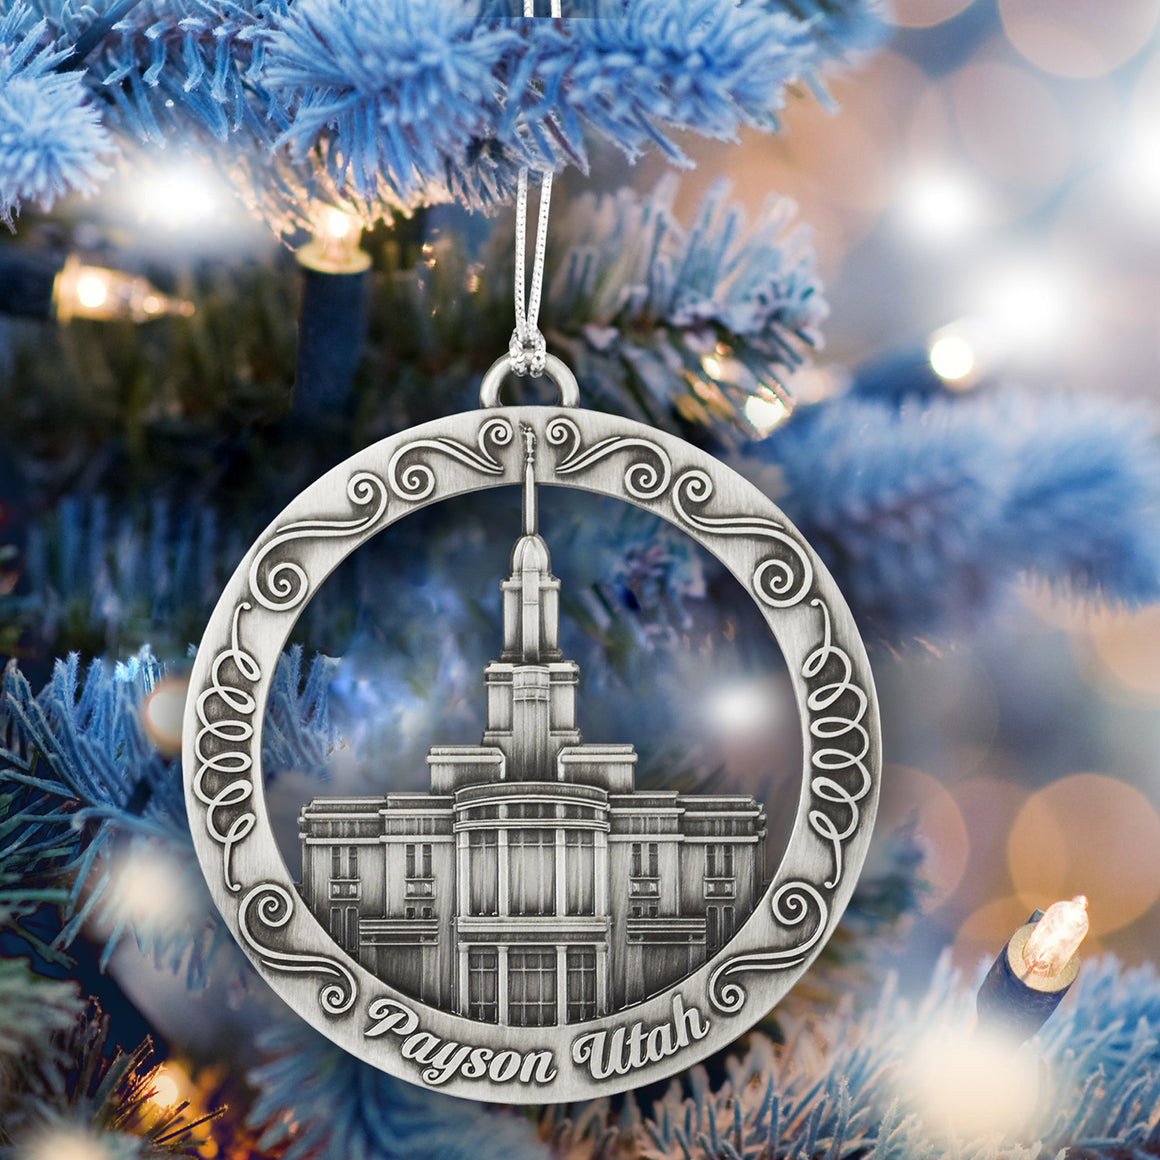 Payson Utah Temple Ornament